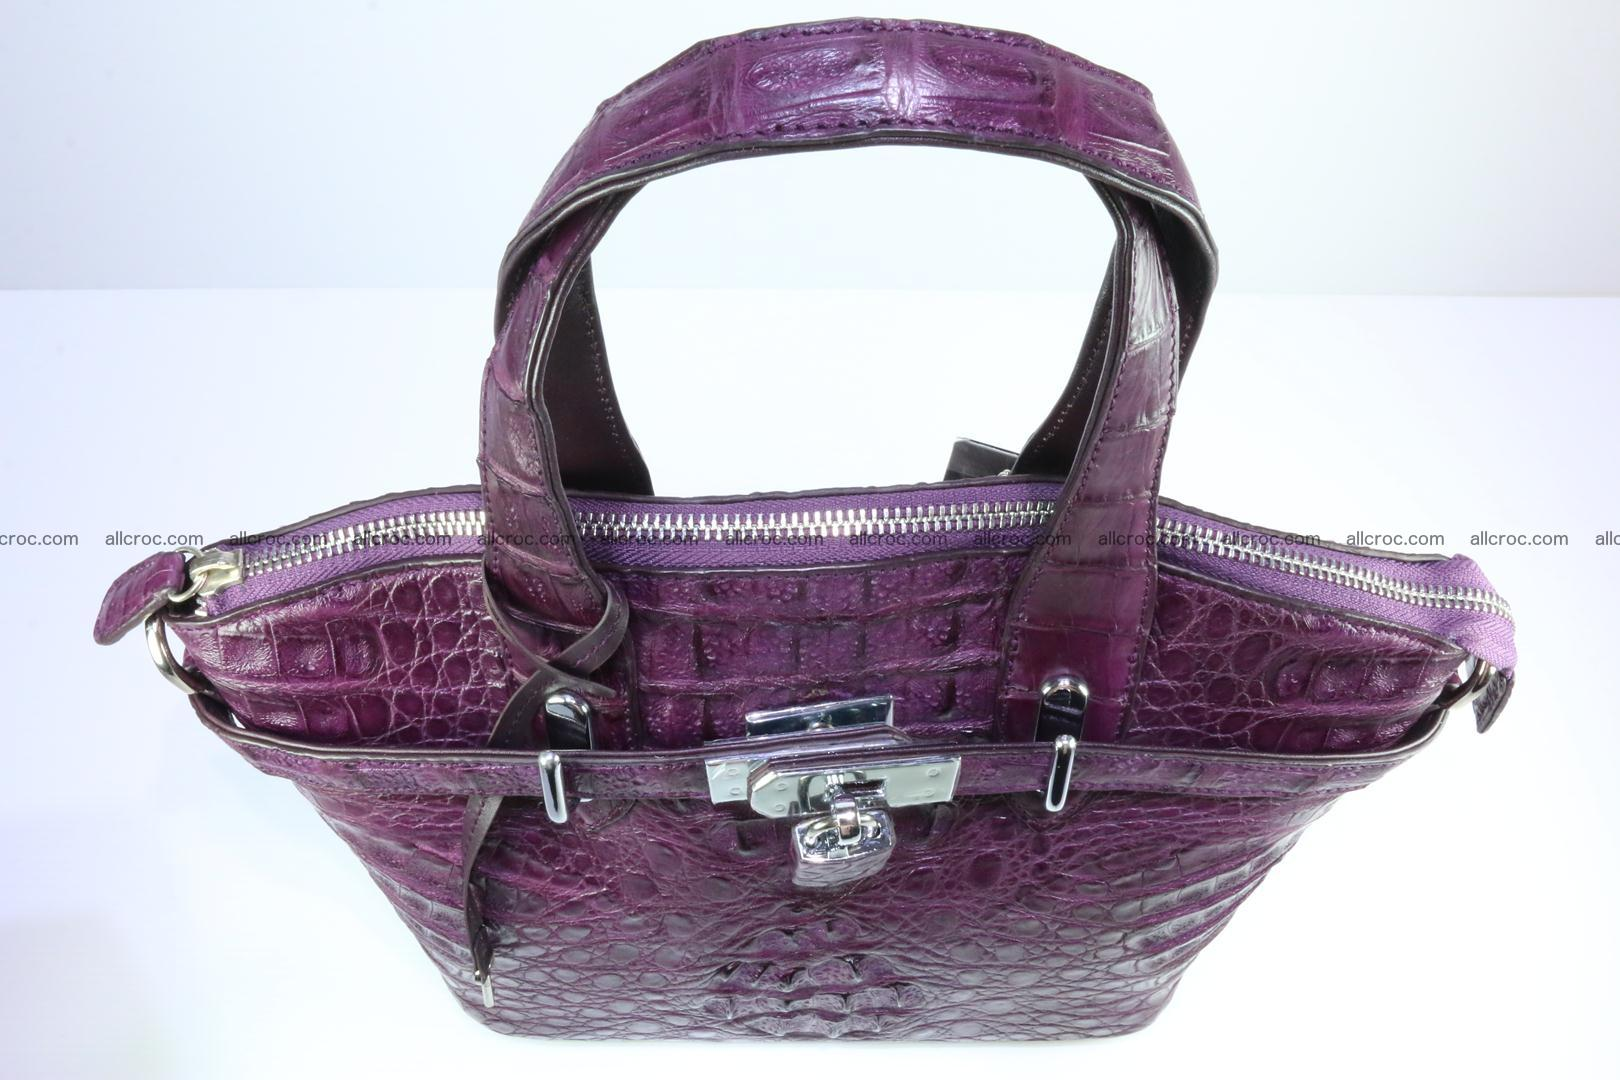 Genuine crocodile handbag for ladies 045 Foto 9